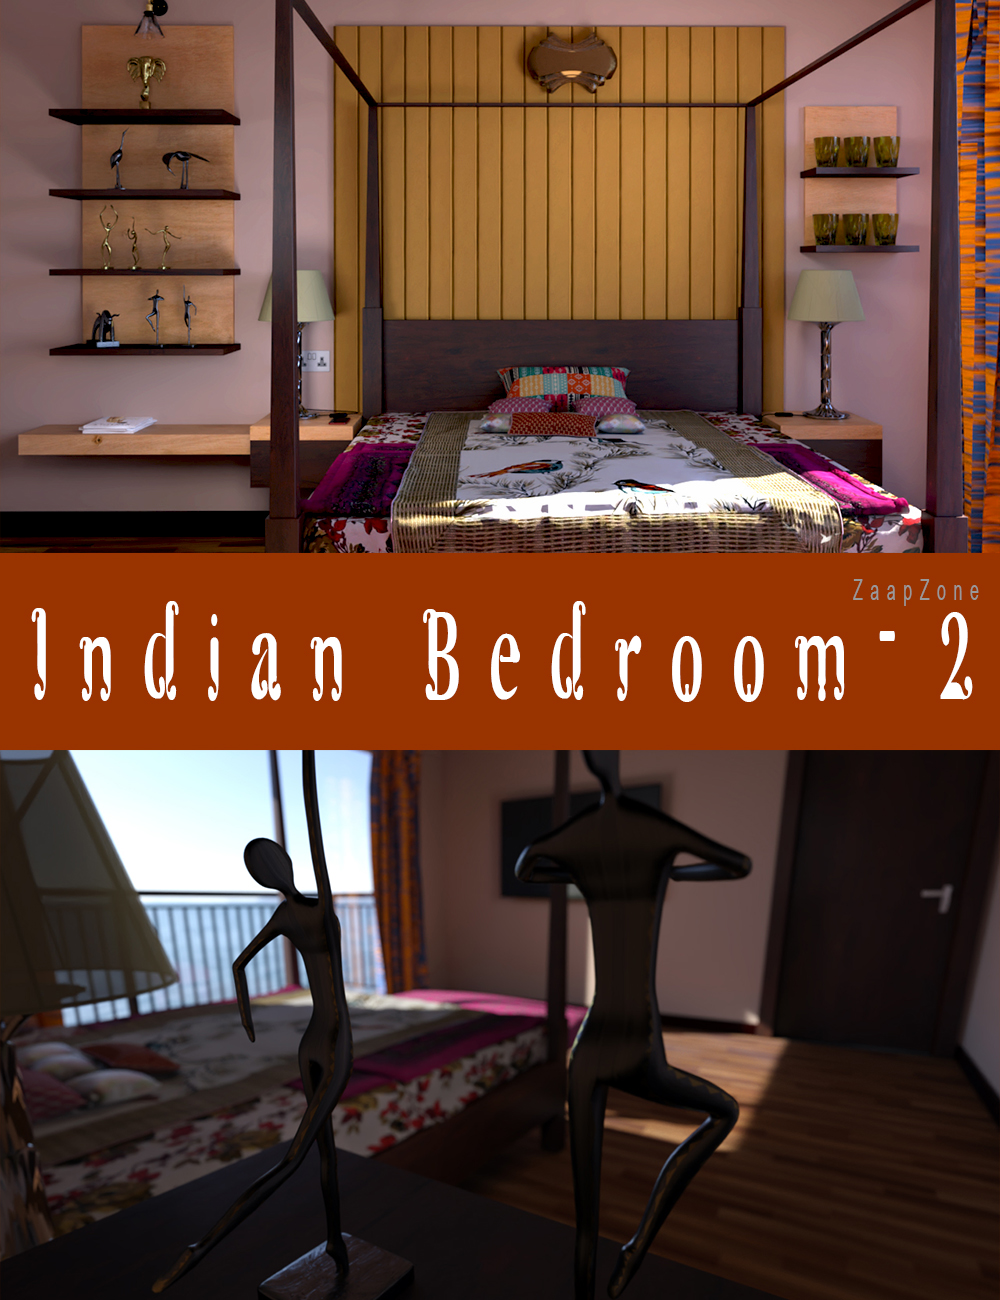 Indian Bedroom 2 by: , 3D Models by Daz 3D